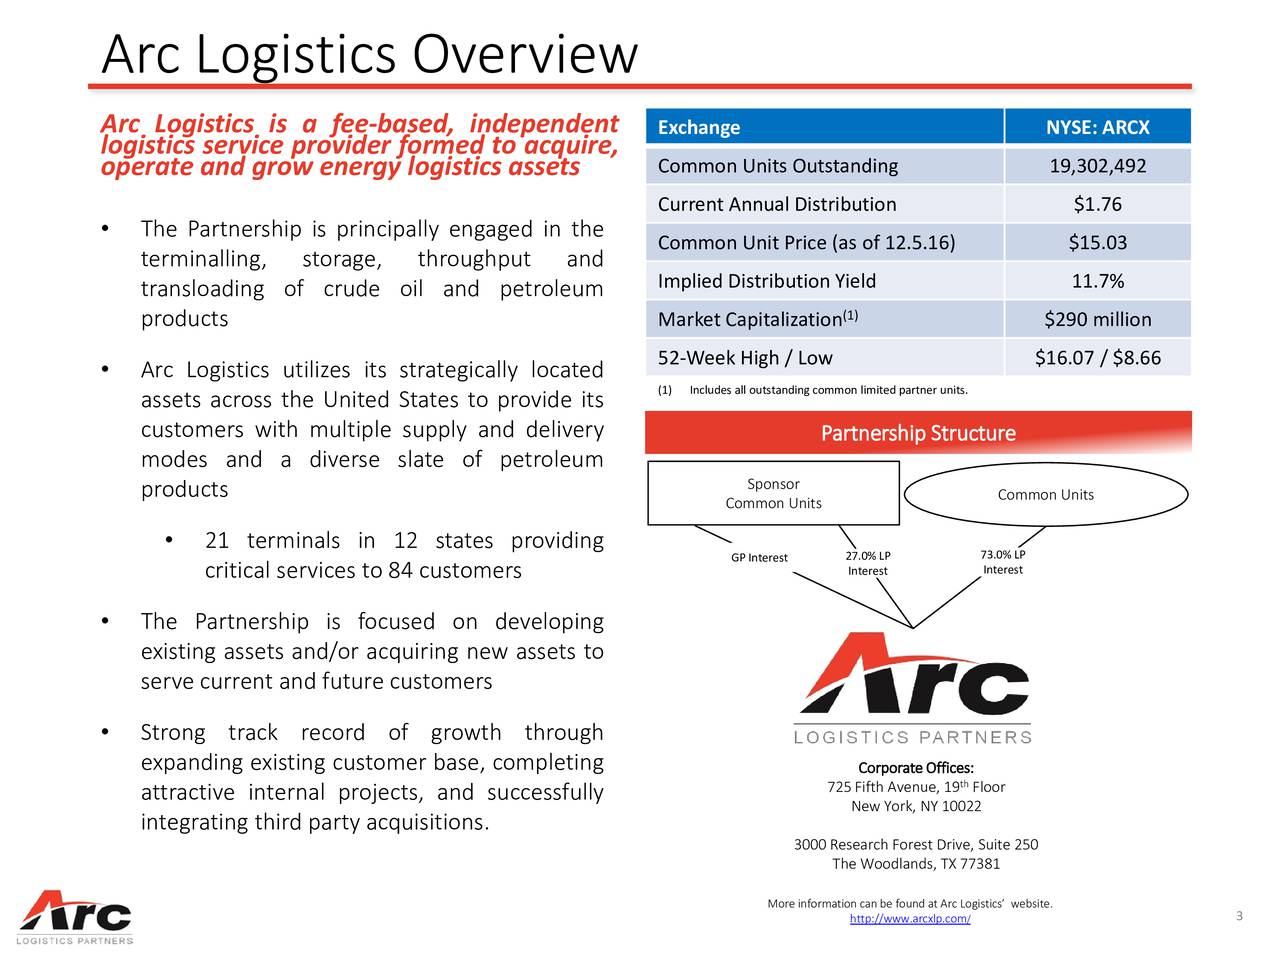 Arc Logistics is a fee-based, independent Exchange NYSE: ARCX logistics service provider formed to acquire, operate and grow energy logistics assets Common Units Outstanding 19,302,492 Current Annual Distribution $1.76 The Partnershipis principally engaged in the Common Unit Price (as of 12.5.16) $15.03 terminalling, storage, throughput and transloading of crude oil and petroleum Implied Distribution Yield 11.7% (1) products Market Capitalization $290 million 52-Week High / Low $16.07 / $8.66 Arc Logistics utilizes its strategically located assets across the United States to provide its (1) Includes all outstandingcommon limited partner units. customers with multiple supply and delivery Partnership Structure modes and a diverse slate of petroleum Sponsor products Common Units Common Units 21 terminals in 12 states providing GP Interest 27.0% LP Interest critical services to 84 customers Interest The Partnership is focused on developing existing assets and/or acquiring new assets to serve current and future customers Strong track record of growth through expanding existing customer base, completing Corporate Offices: attractive internal projects, and successfully 725Fifth Avenue, 19 Floor New York, NY 10022 integratingthirdparty acquisitions. 3000Research Forest Drive, Suite 250 The Woodlands, TX 77381 More information can be found at Arc Logistics website. http://www.ar/xlp.com 3